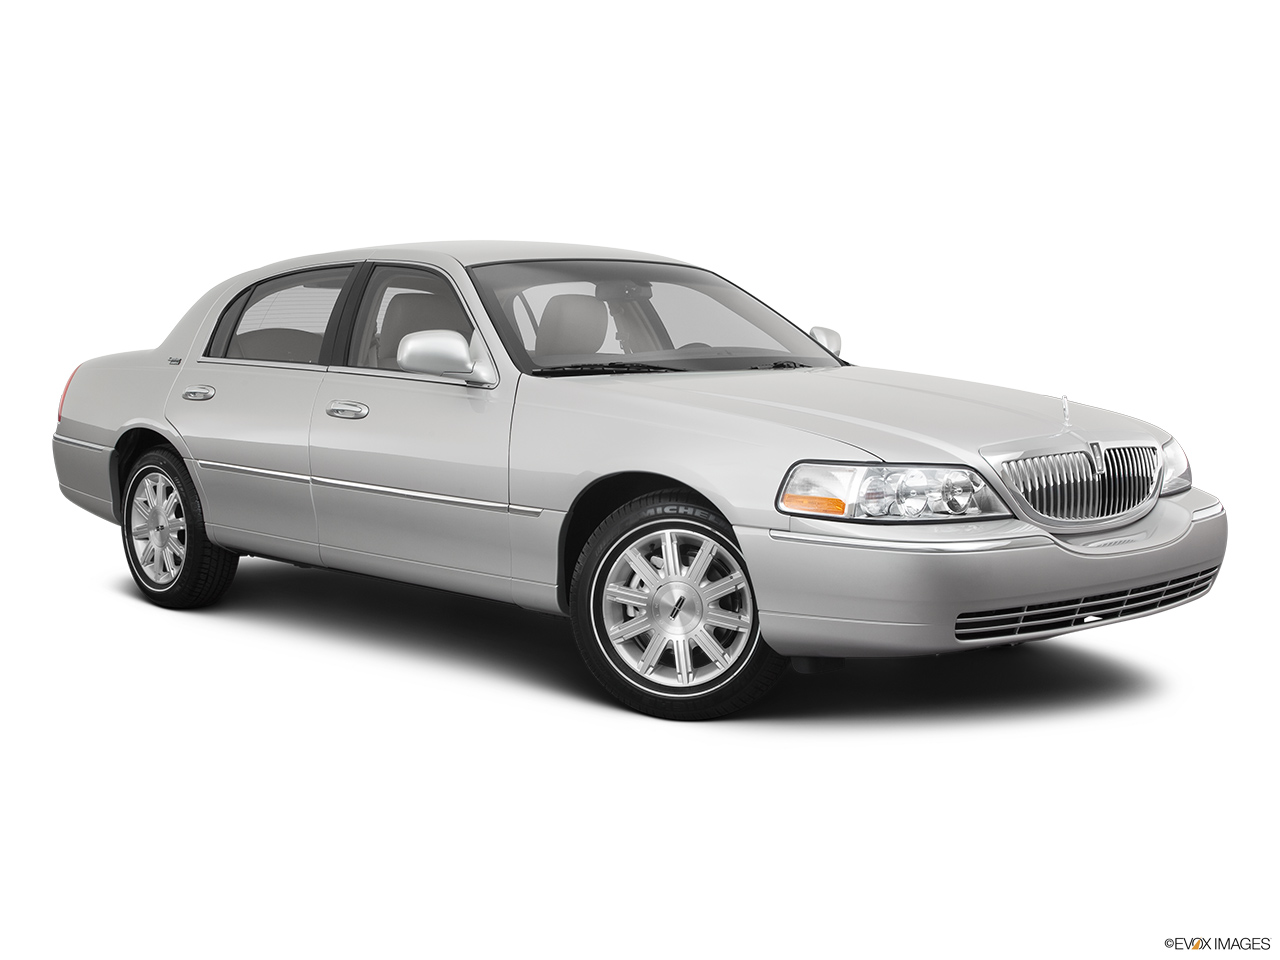 2011 Lincoln Town Car Signature Limited Front passenger 3/4 w/ wheels turned.